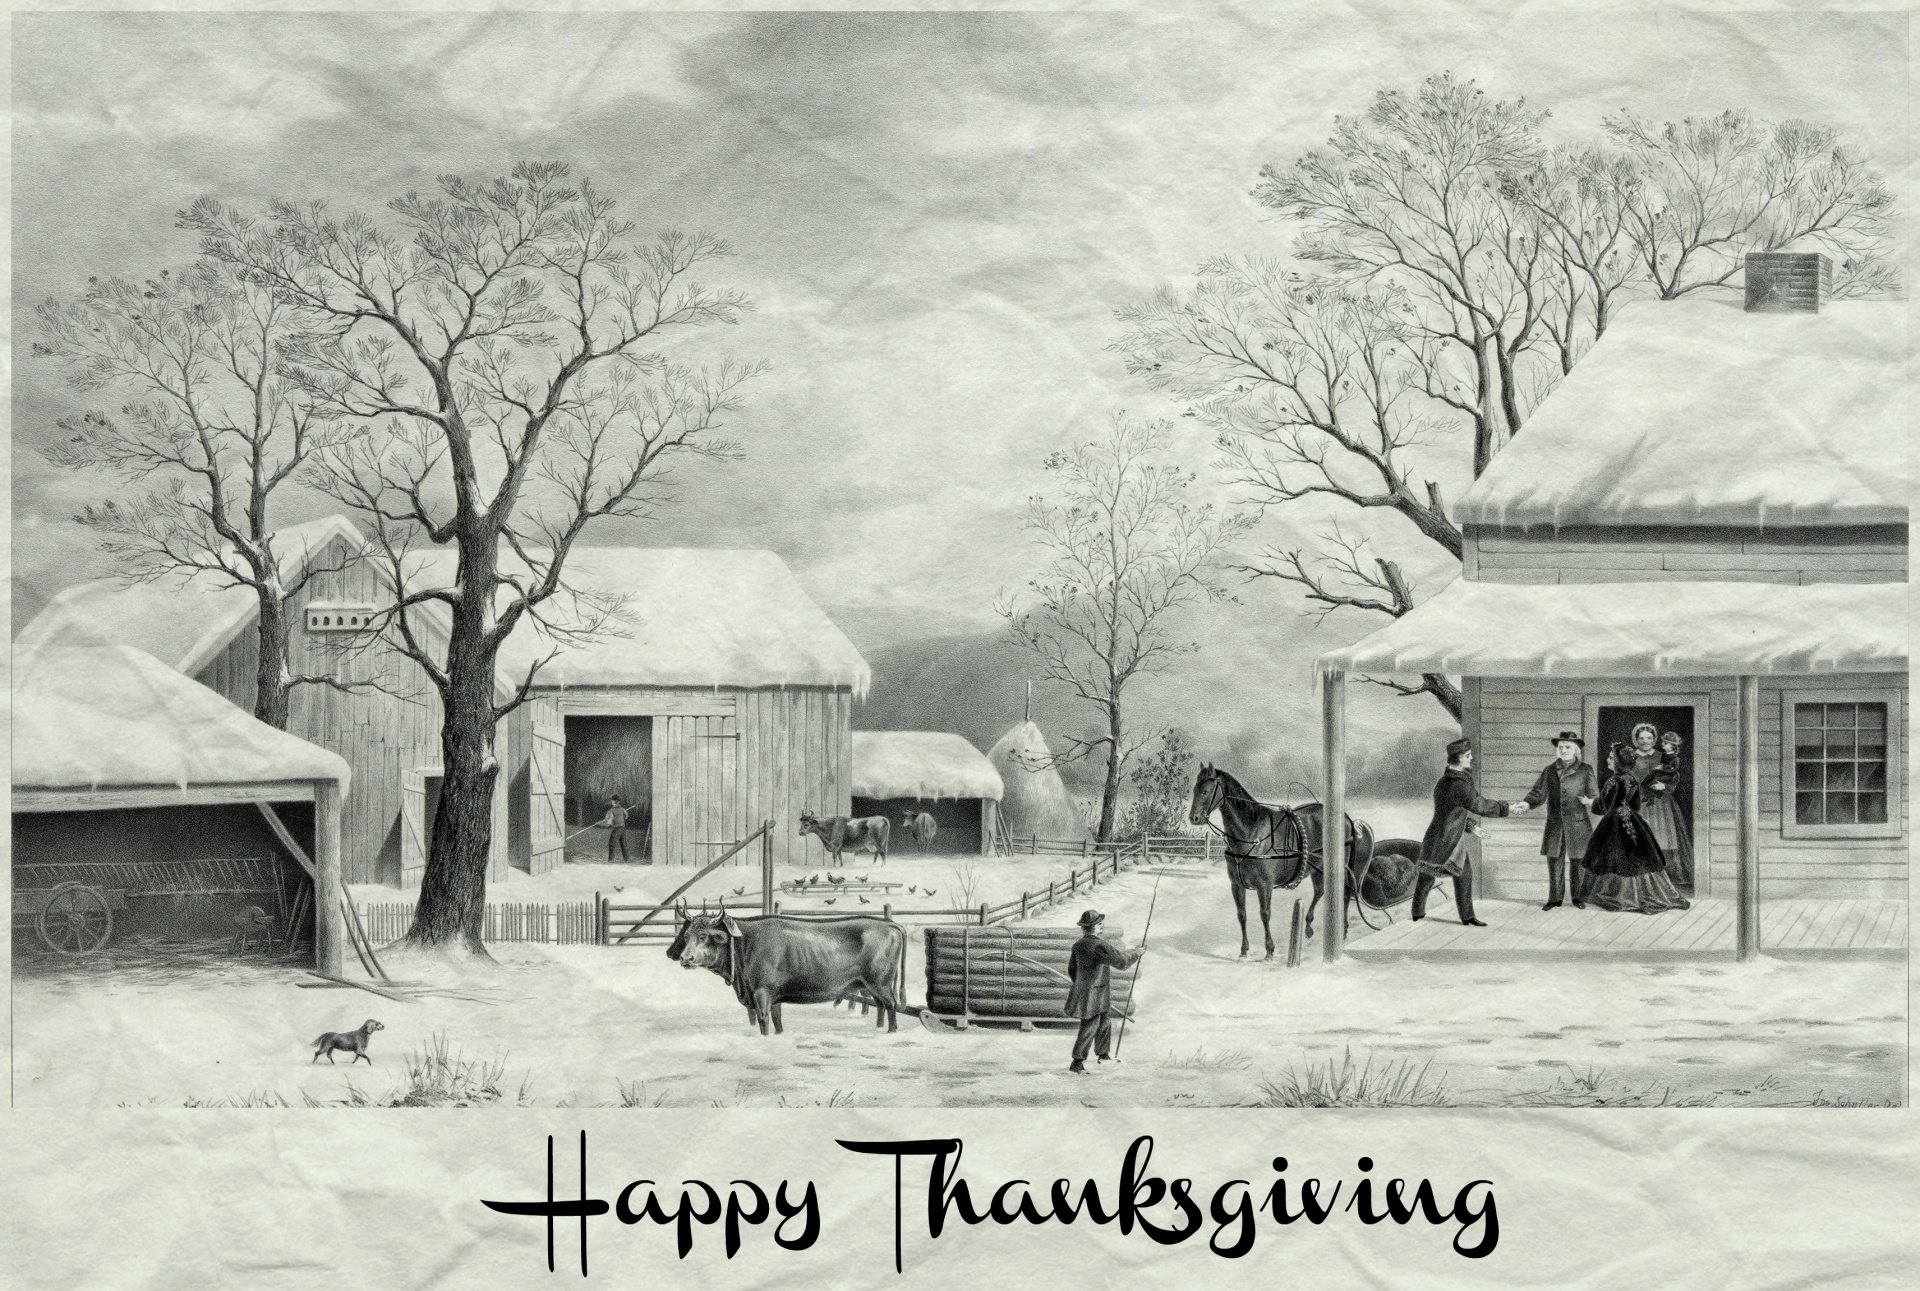 Closed Thanksgiving, Christmas, and New Years Day